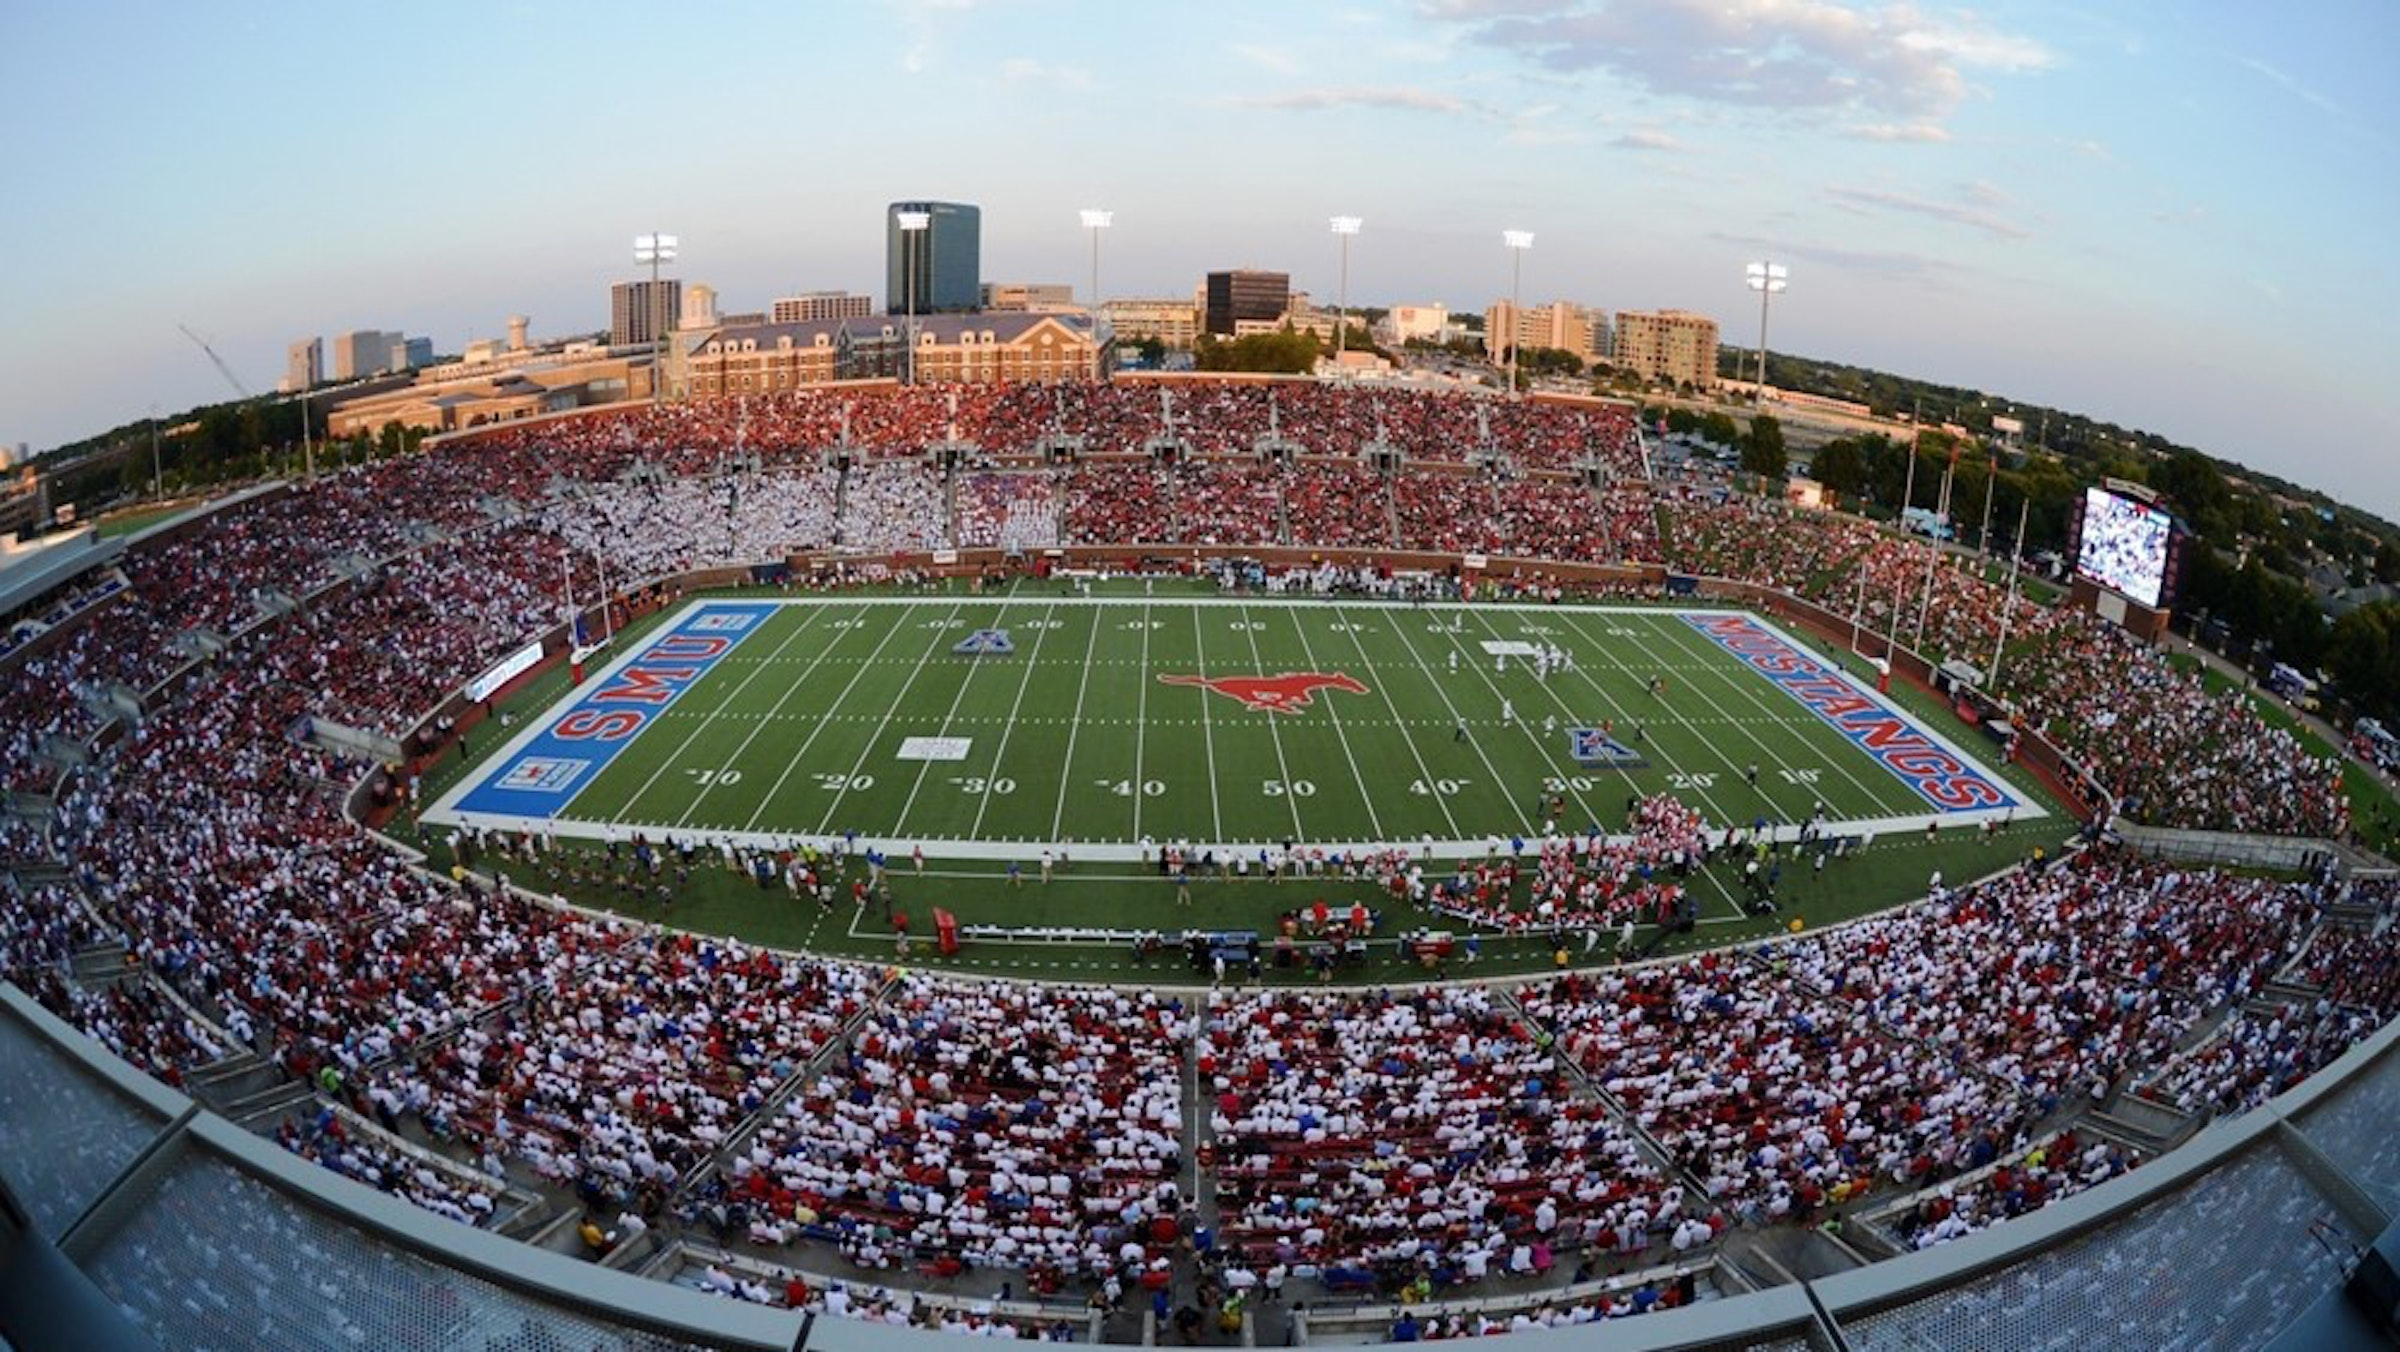 SMU - Gerald J. Ford Stadium in Beyond Dallas